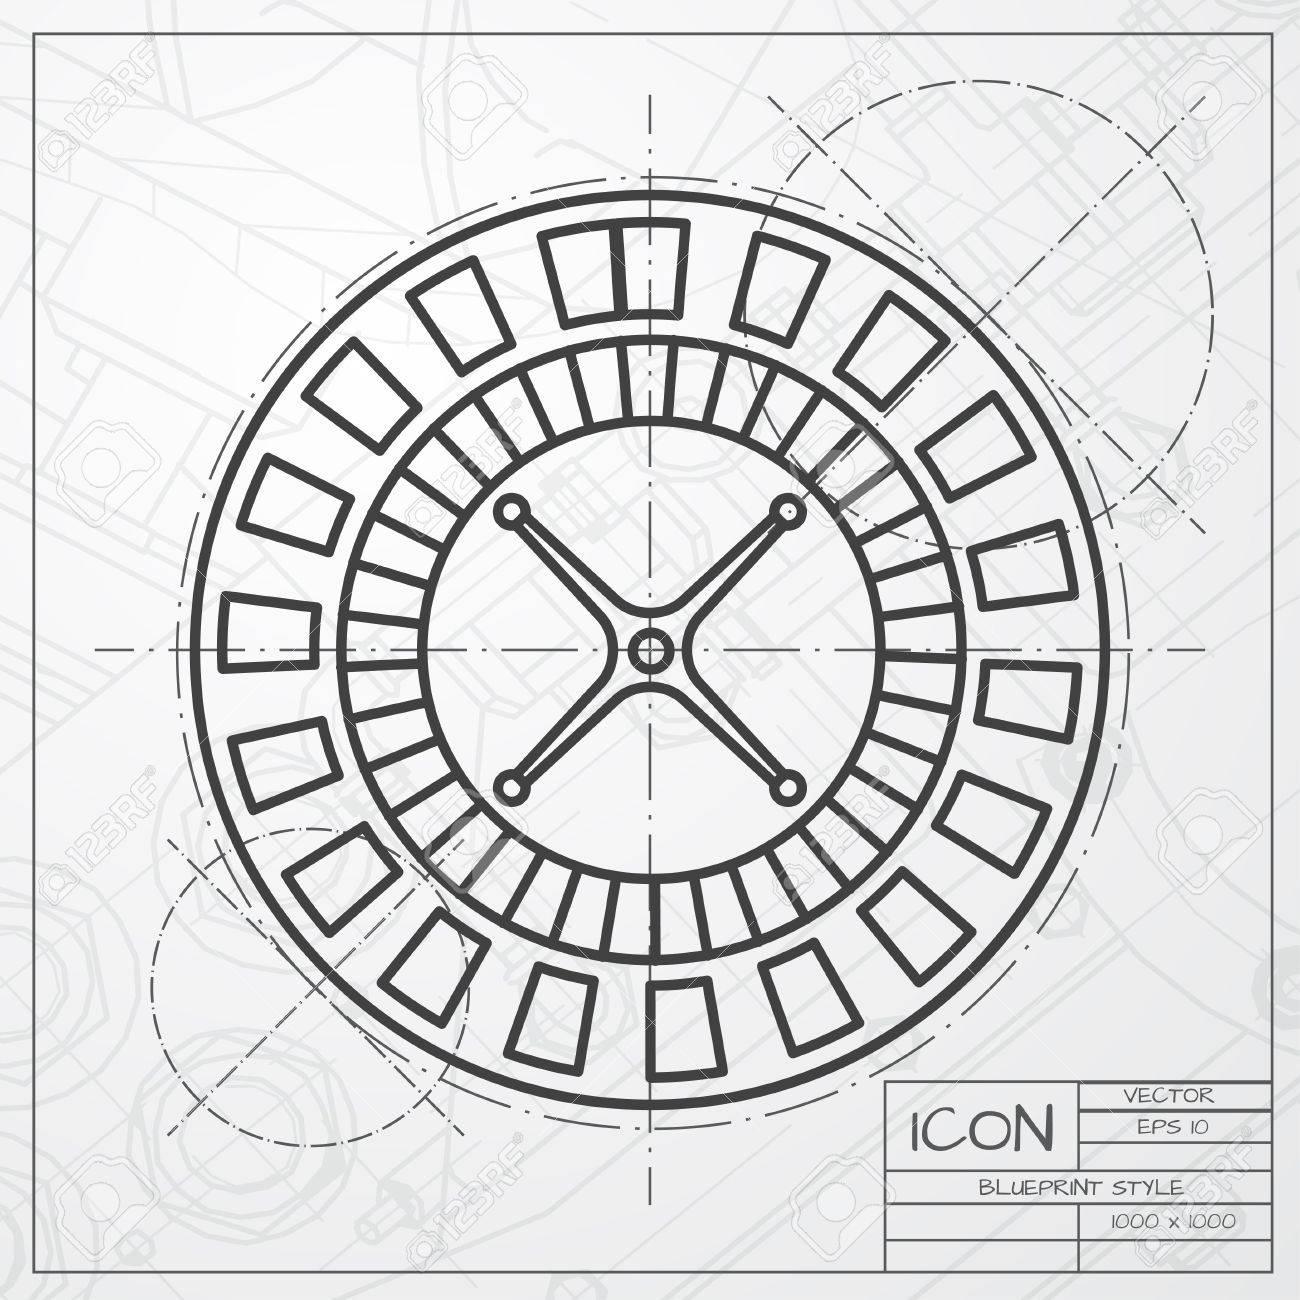 1300x1300 Vector Classic Blueprint Of Casino Roulette Wheel Icon On Engineer